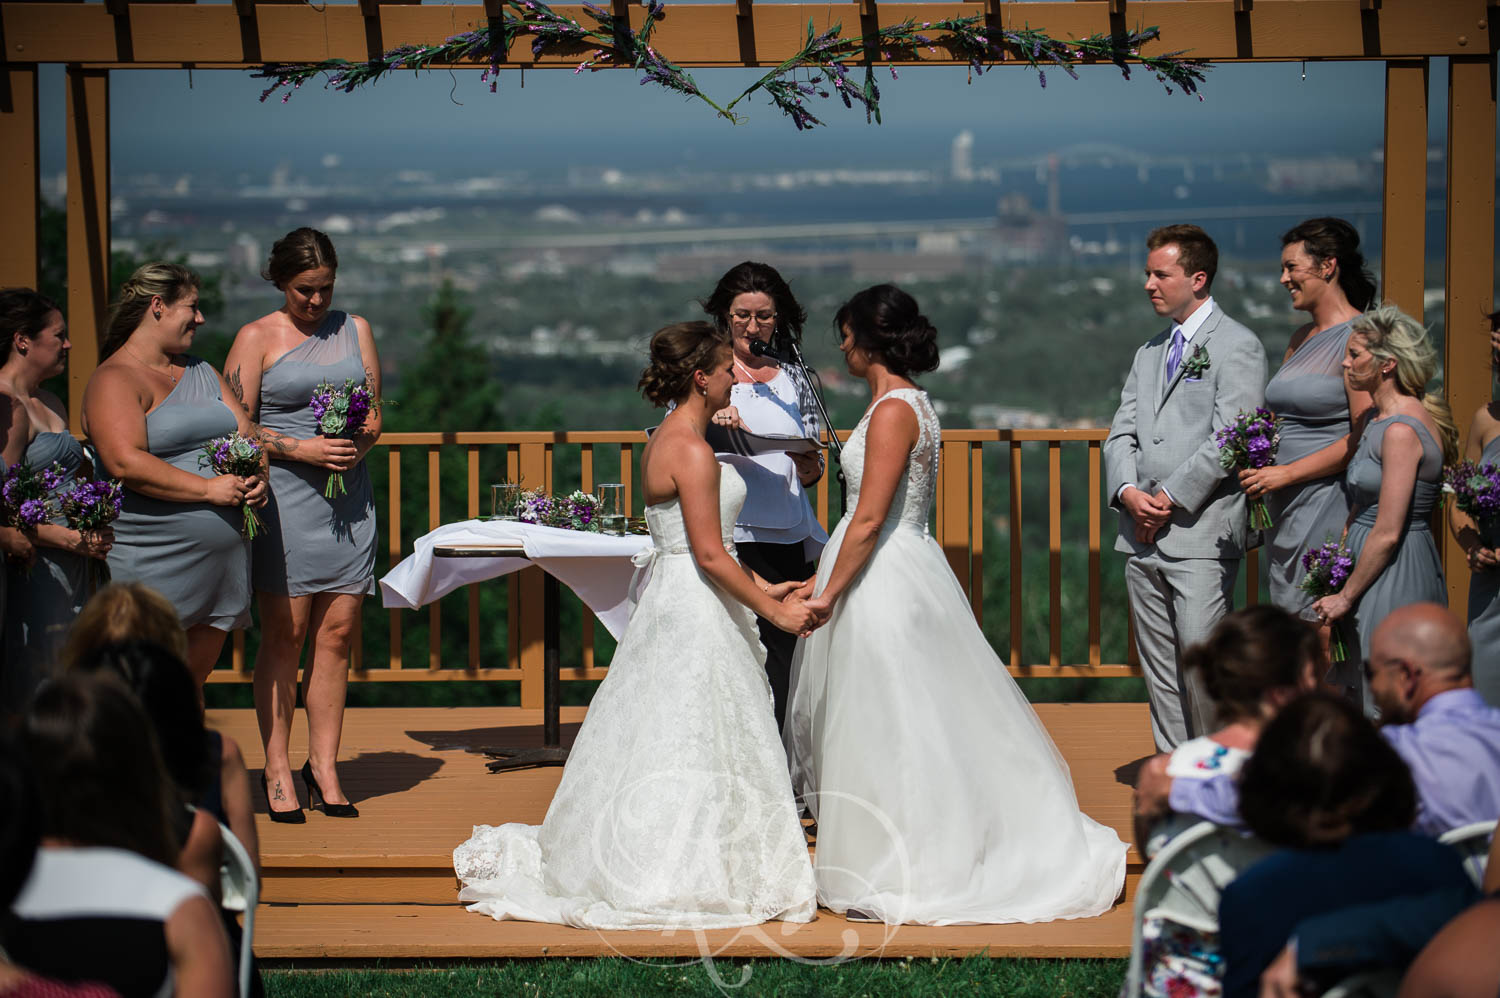 Britni & Paige - LGBT Minnesota Wedding Photography - Spirit Mountain - RKH Images  (22 of 32).jpg